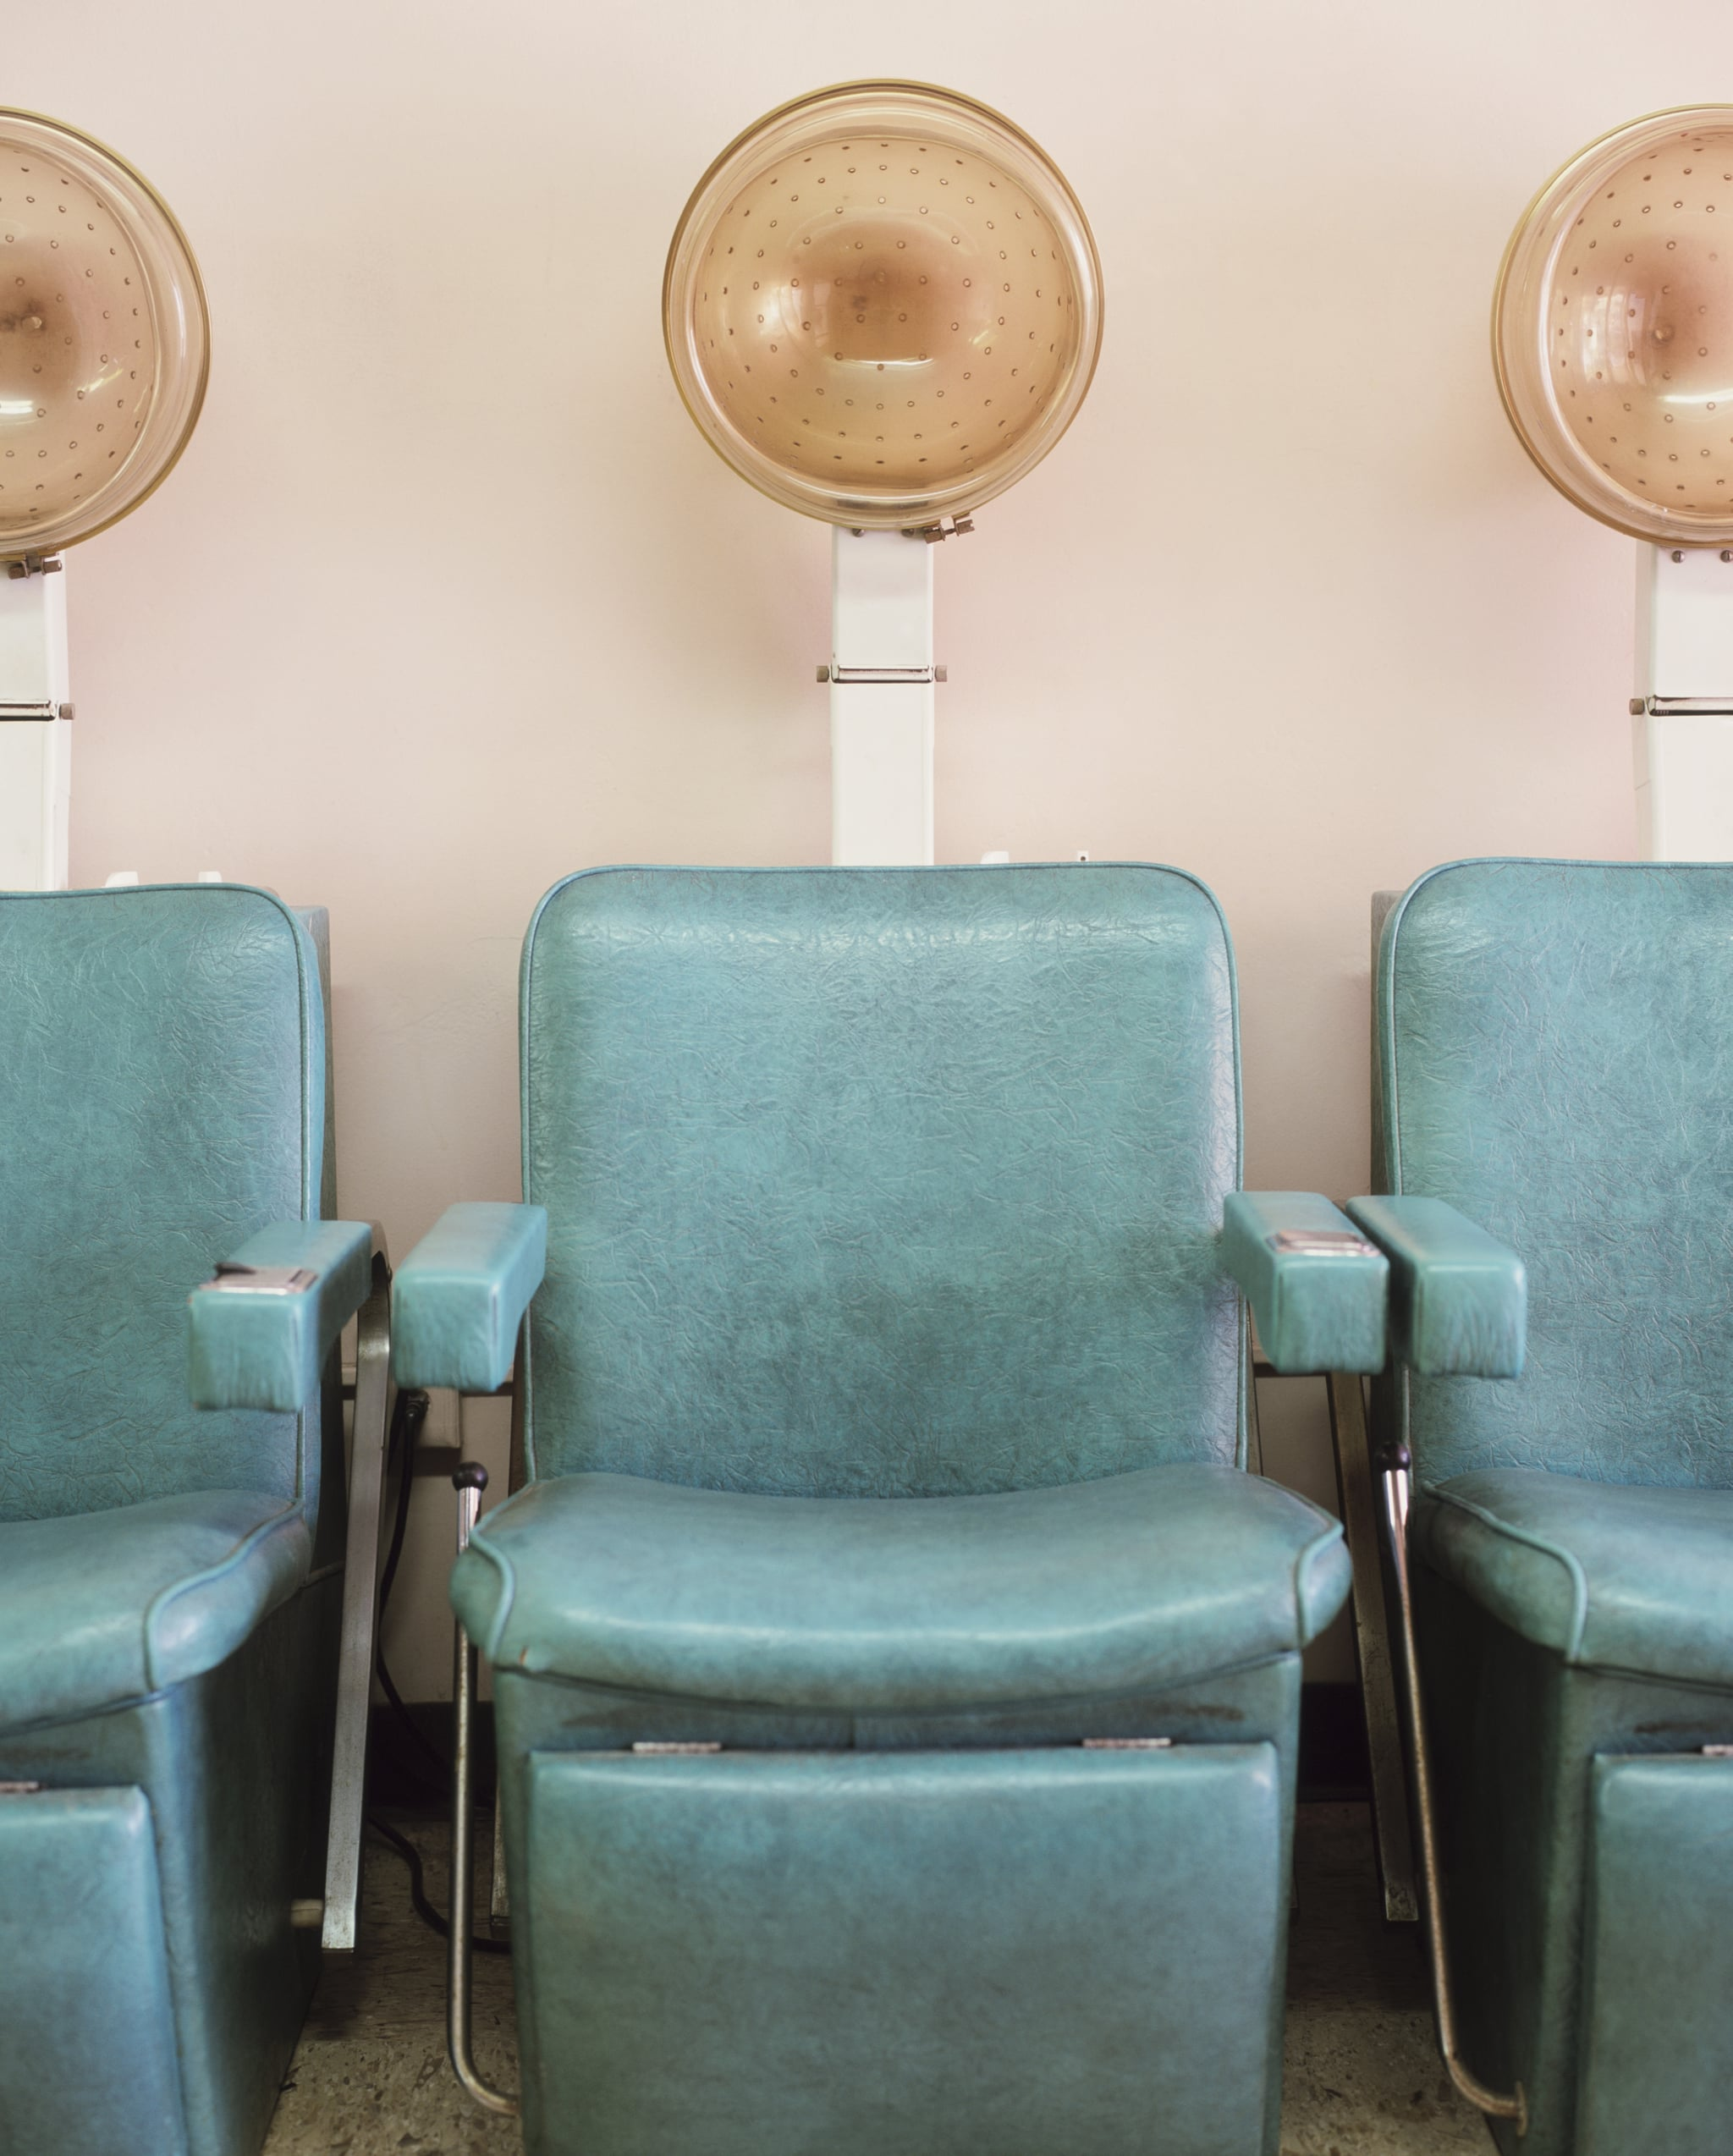 Are Hair Salons Also Closing Down Due to the Coronavirus?